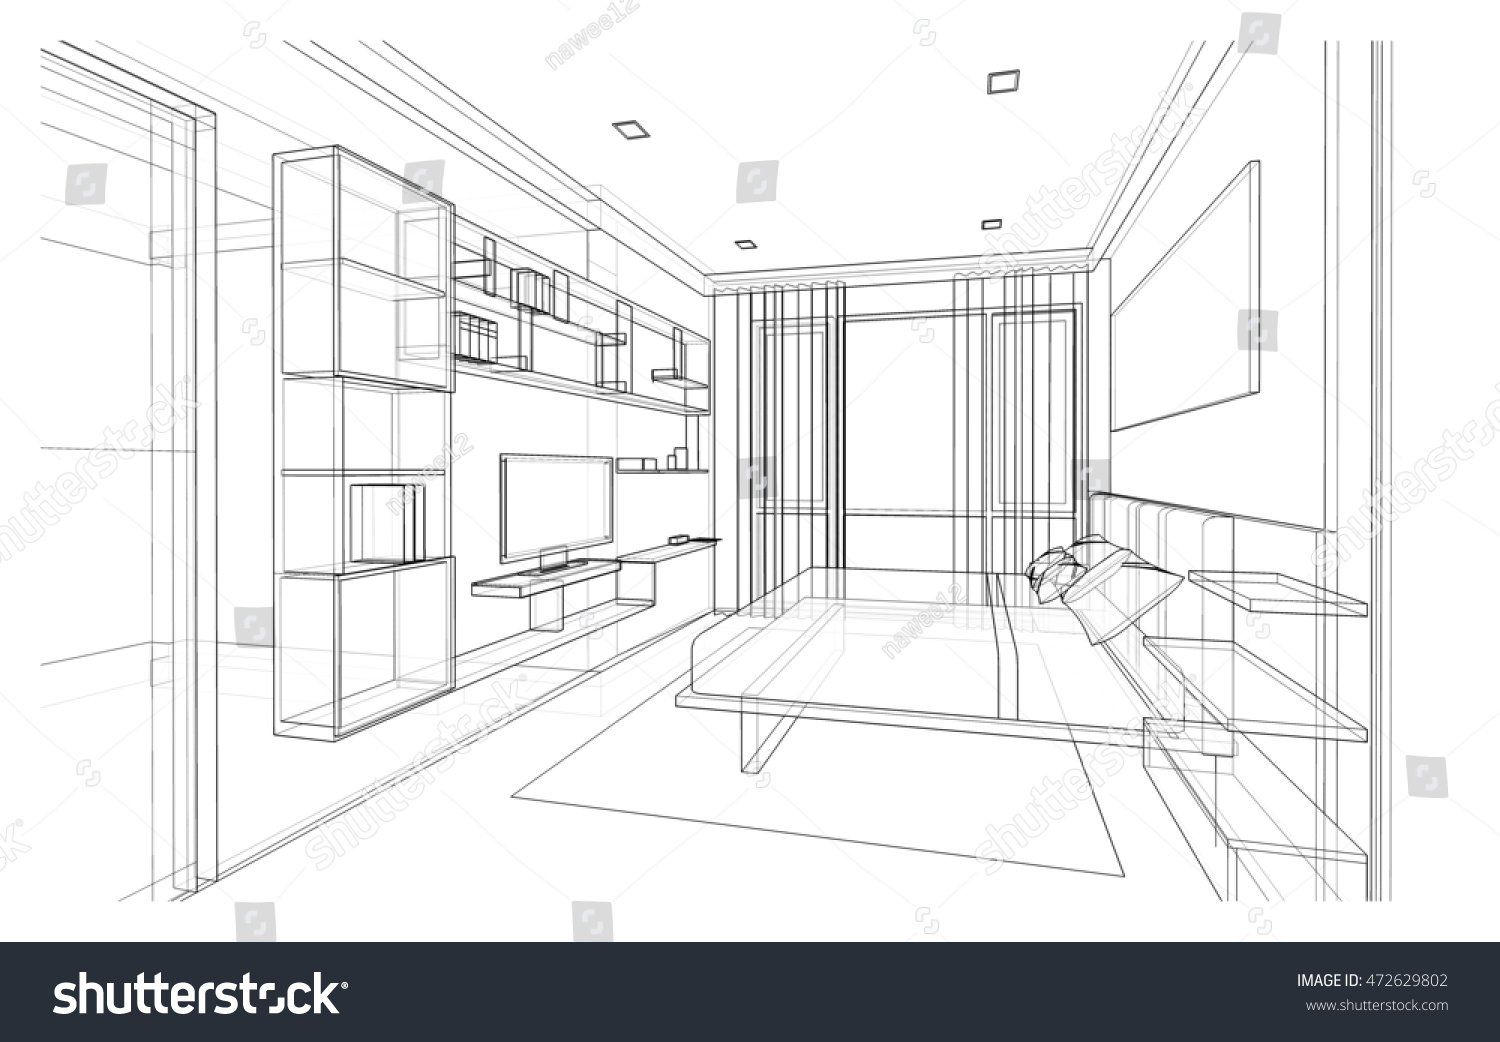 Bedroom drawing perspective - Interior Design Of Modern Style Bedroom 3d Wire Frame Sketch Perspective